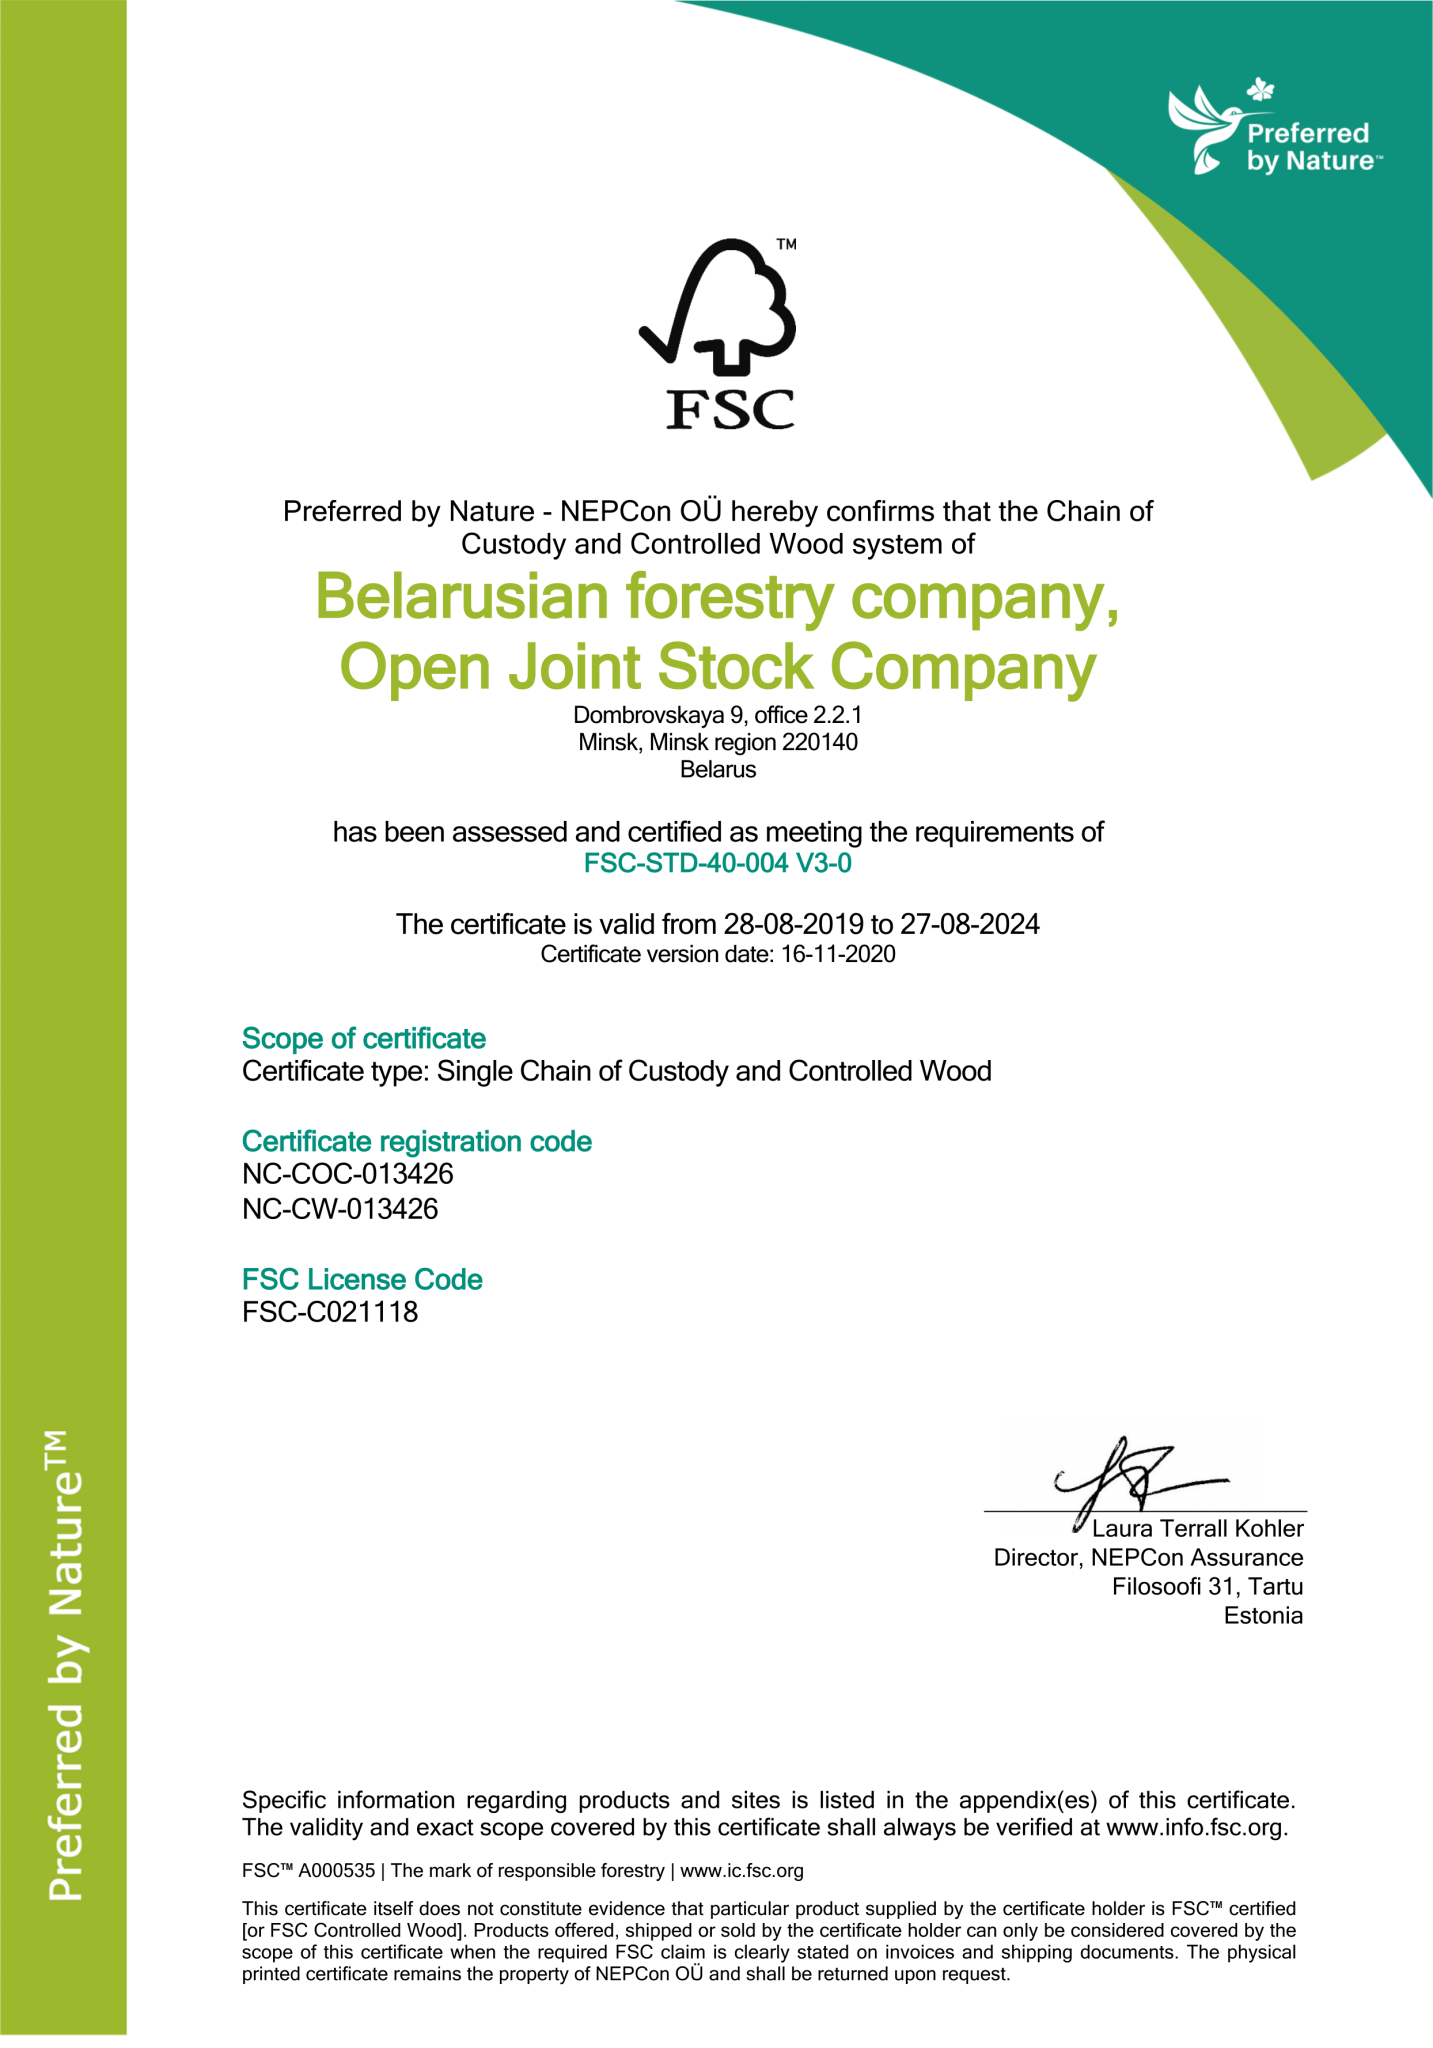 Belarusian forestry company, Open Joint Stock Company FSC COC w_CW Certificate 16.11.2020